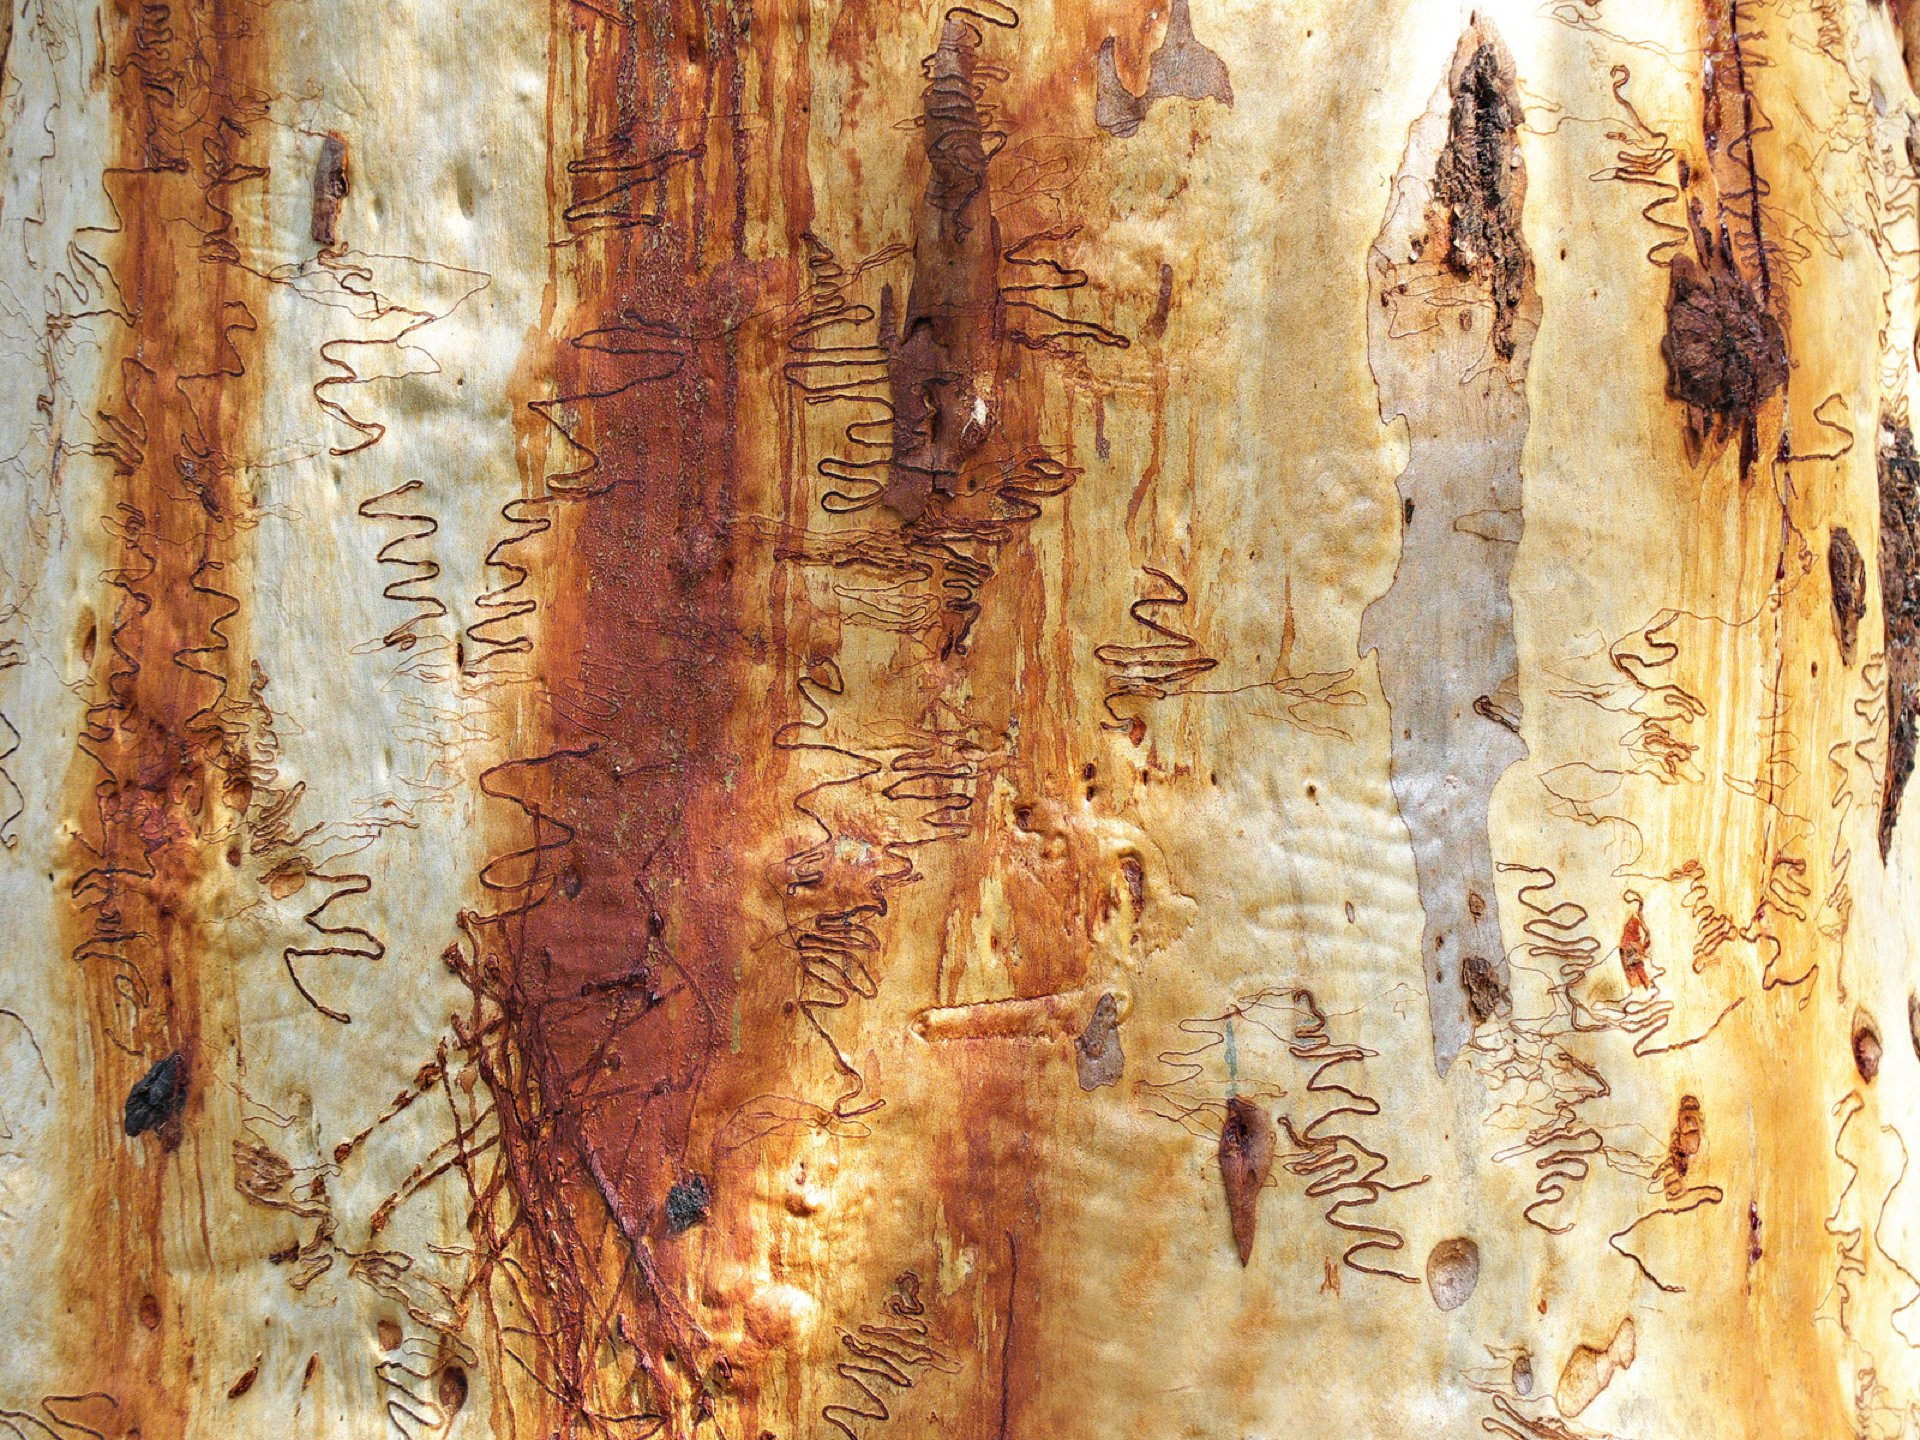 '…a life I could not read': the significance of eucalypts in Australian culture